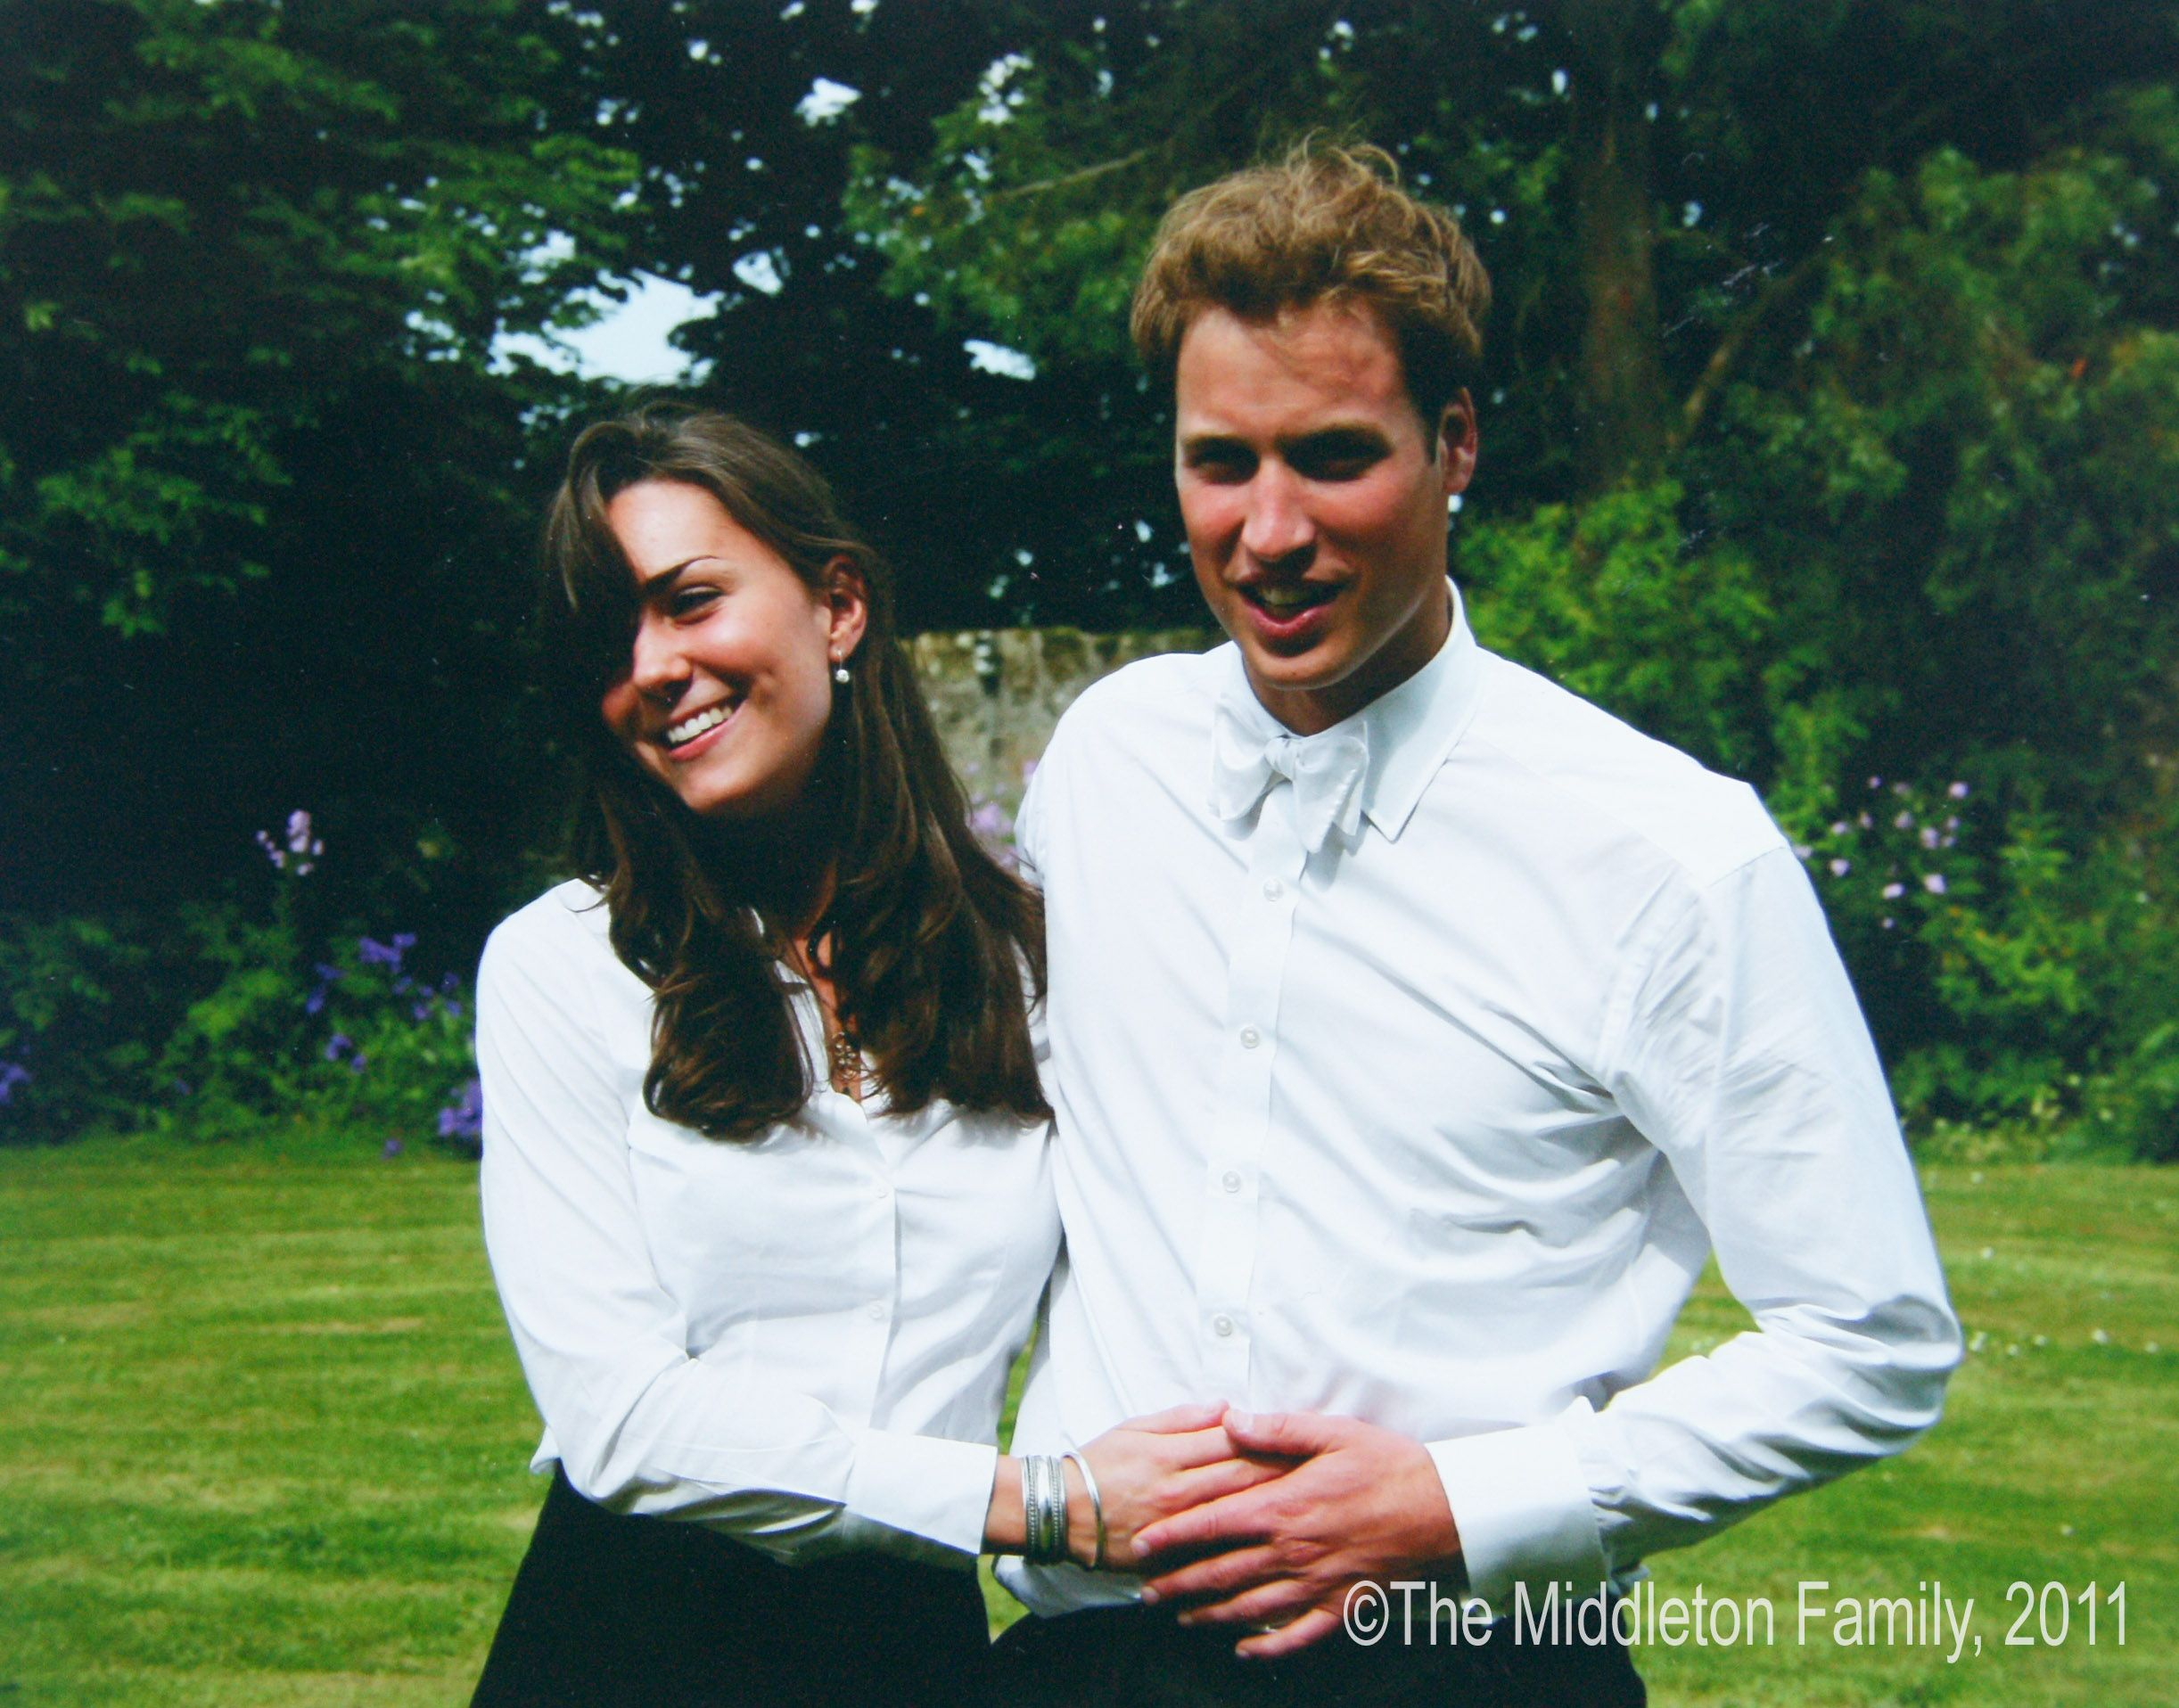 Kate Middleton and Prince William during their graduation ceremony at St Andrew's University in St Andrew's on June 23, 2005 in Scotland. | Source: Getty Images